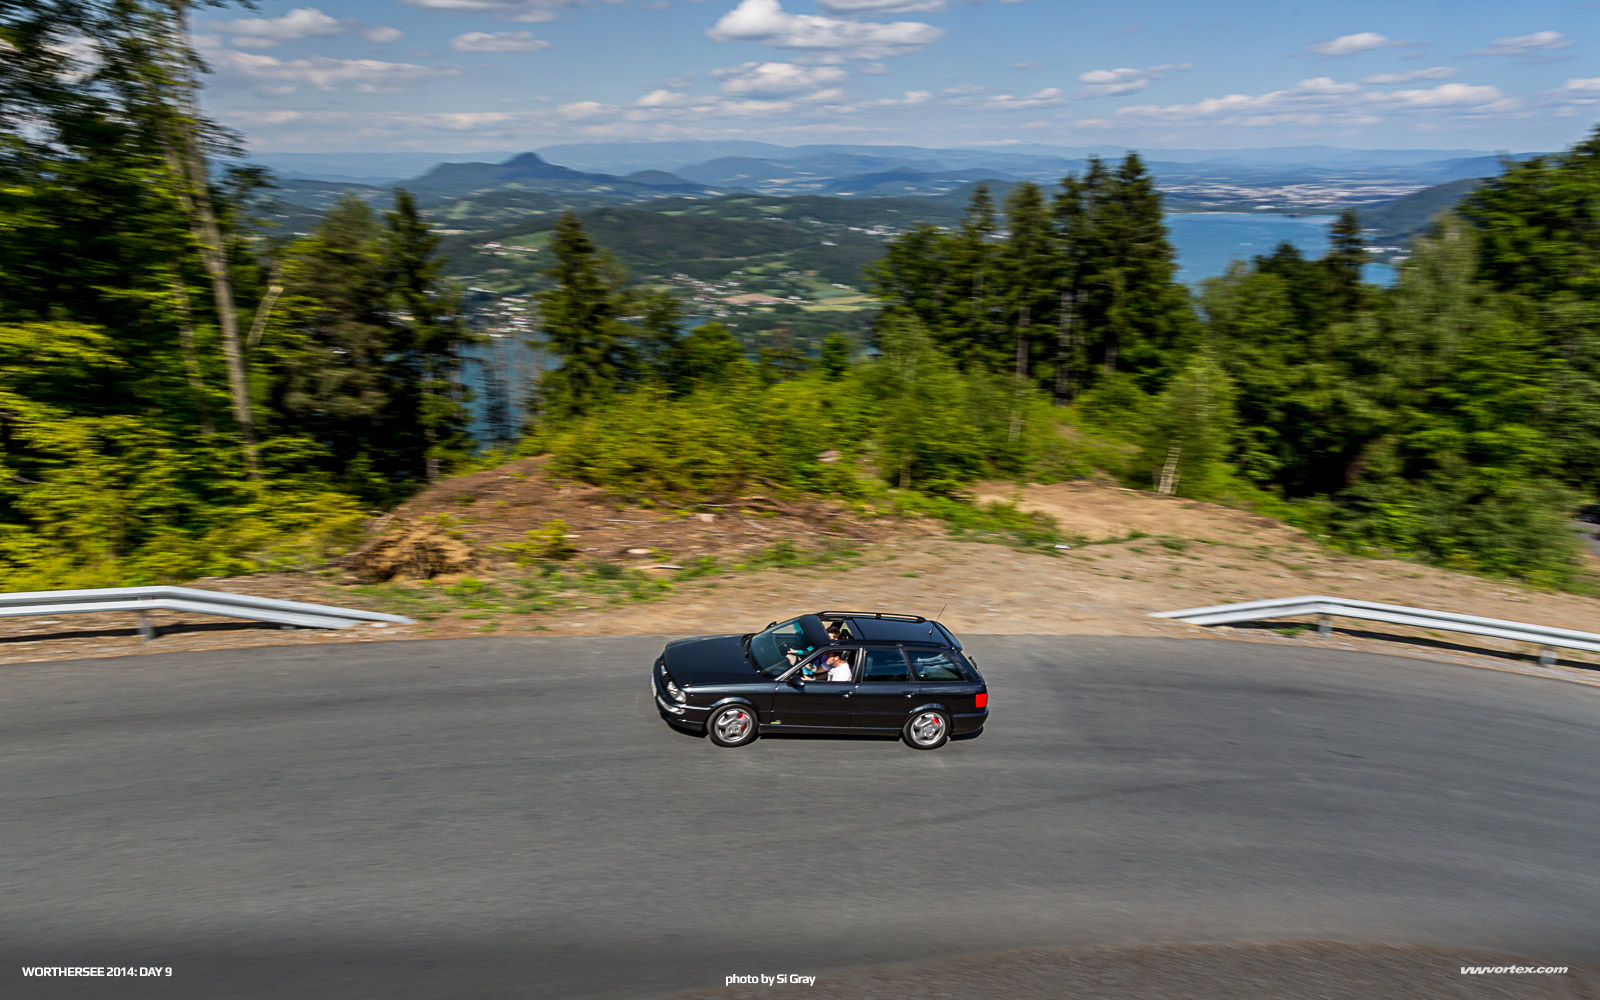 2014-Worthersee-Day-9-Si-Gray-368